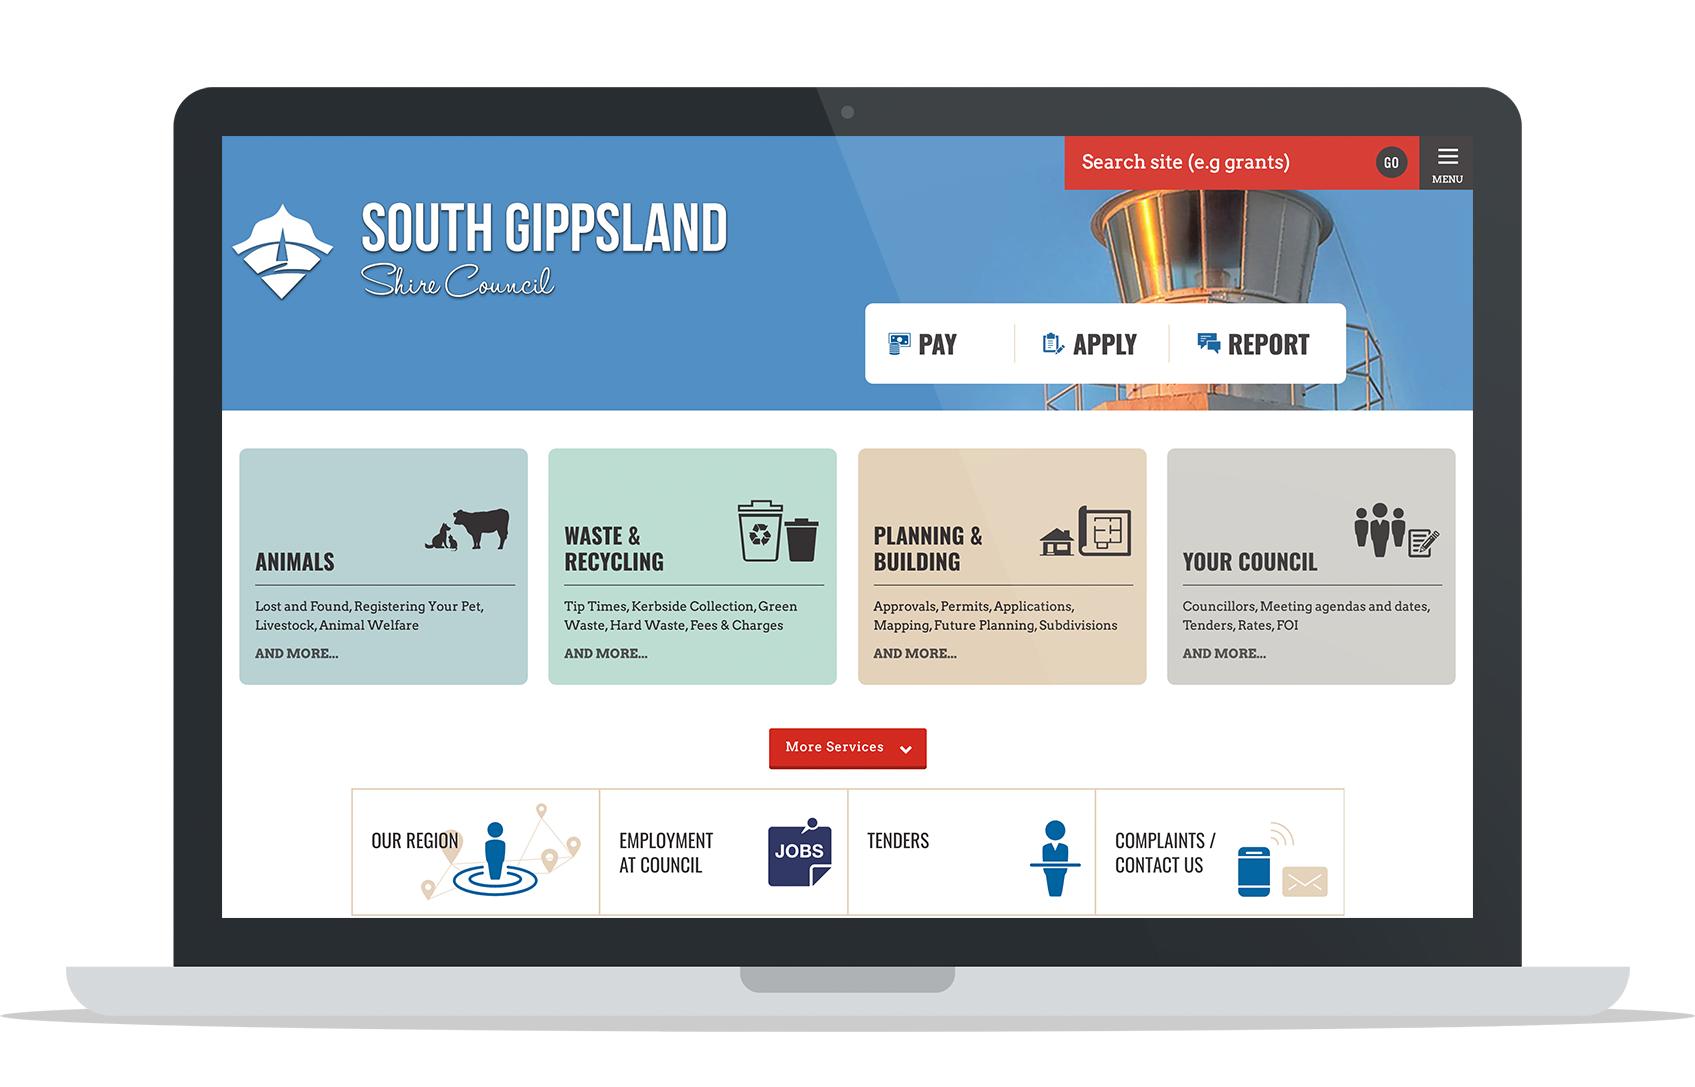 South Gippsland councils website